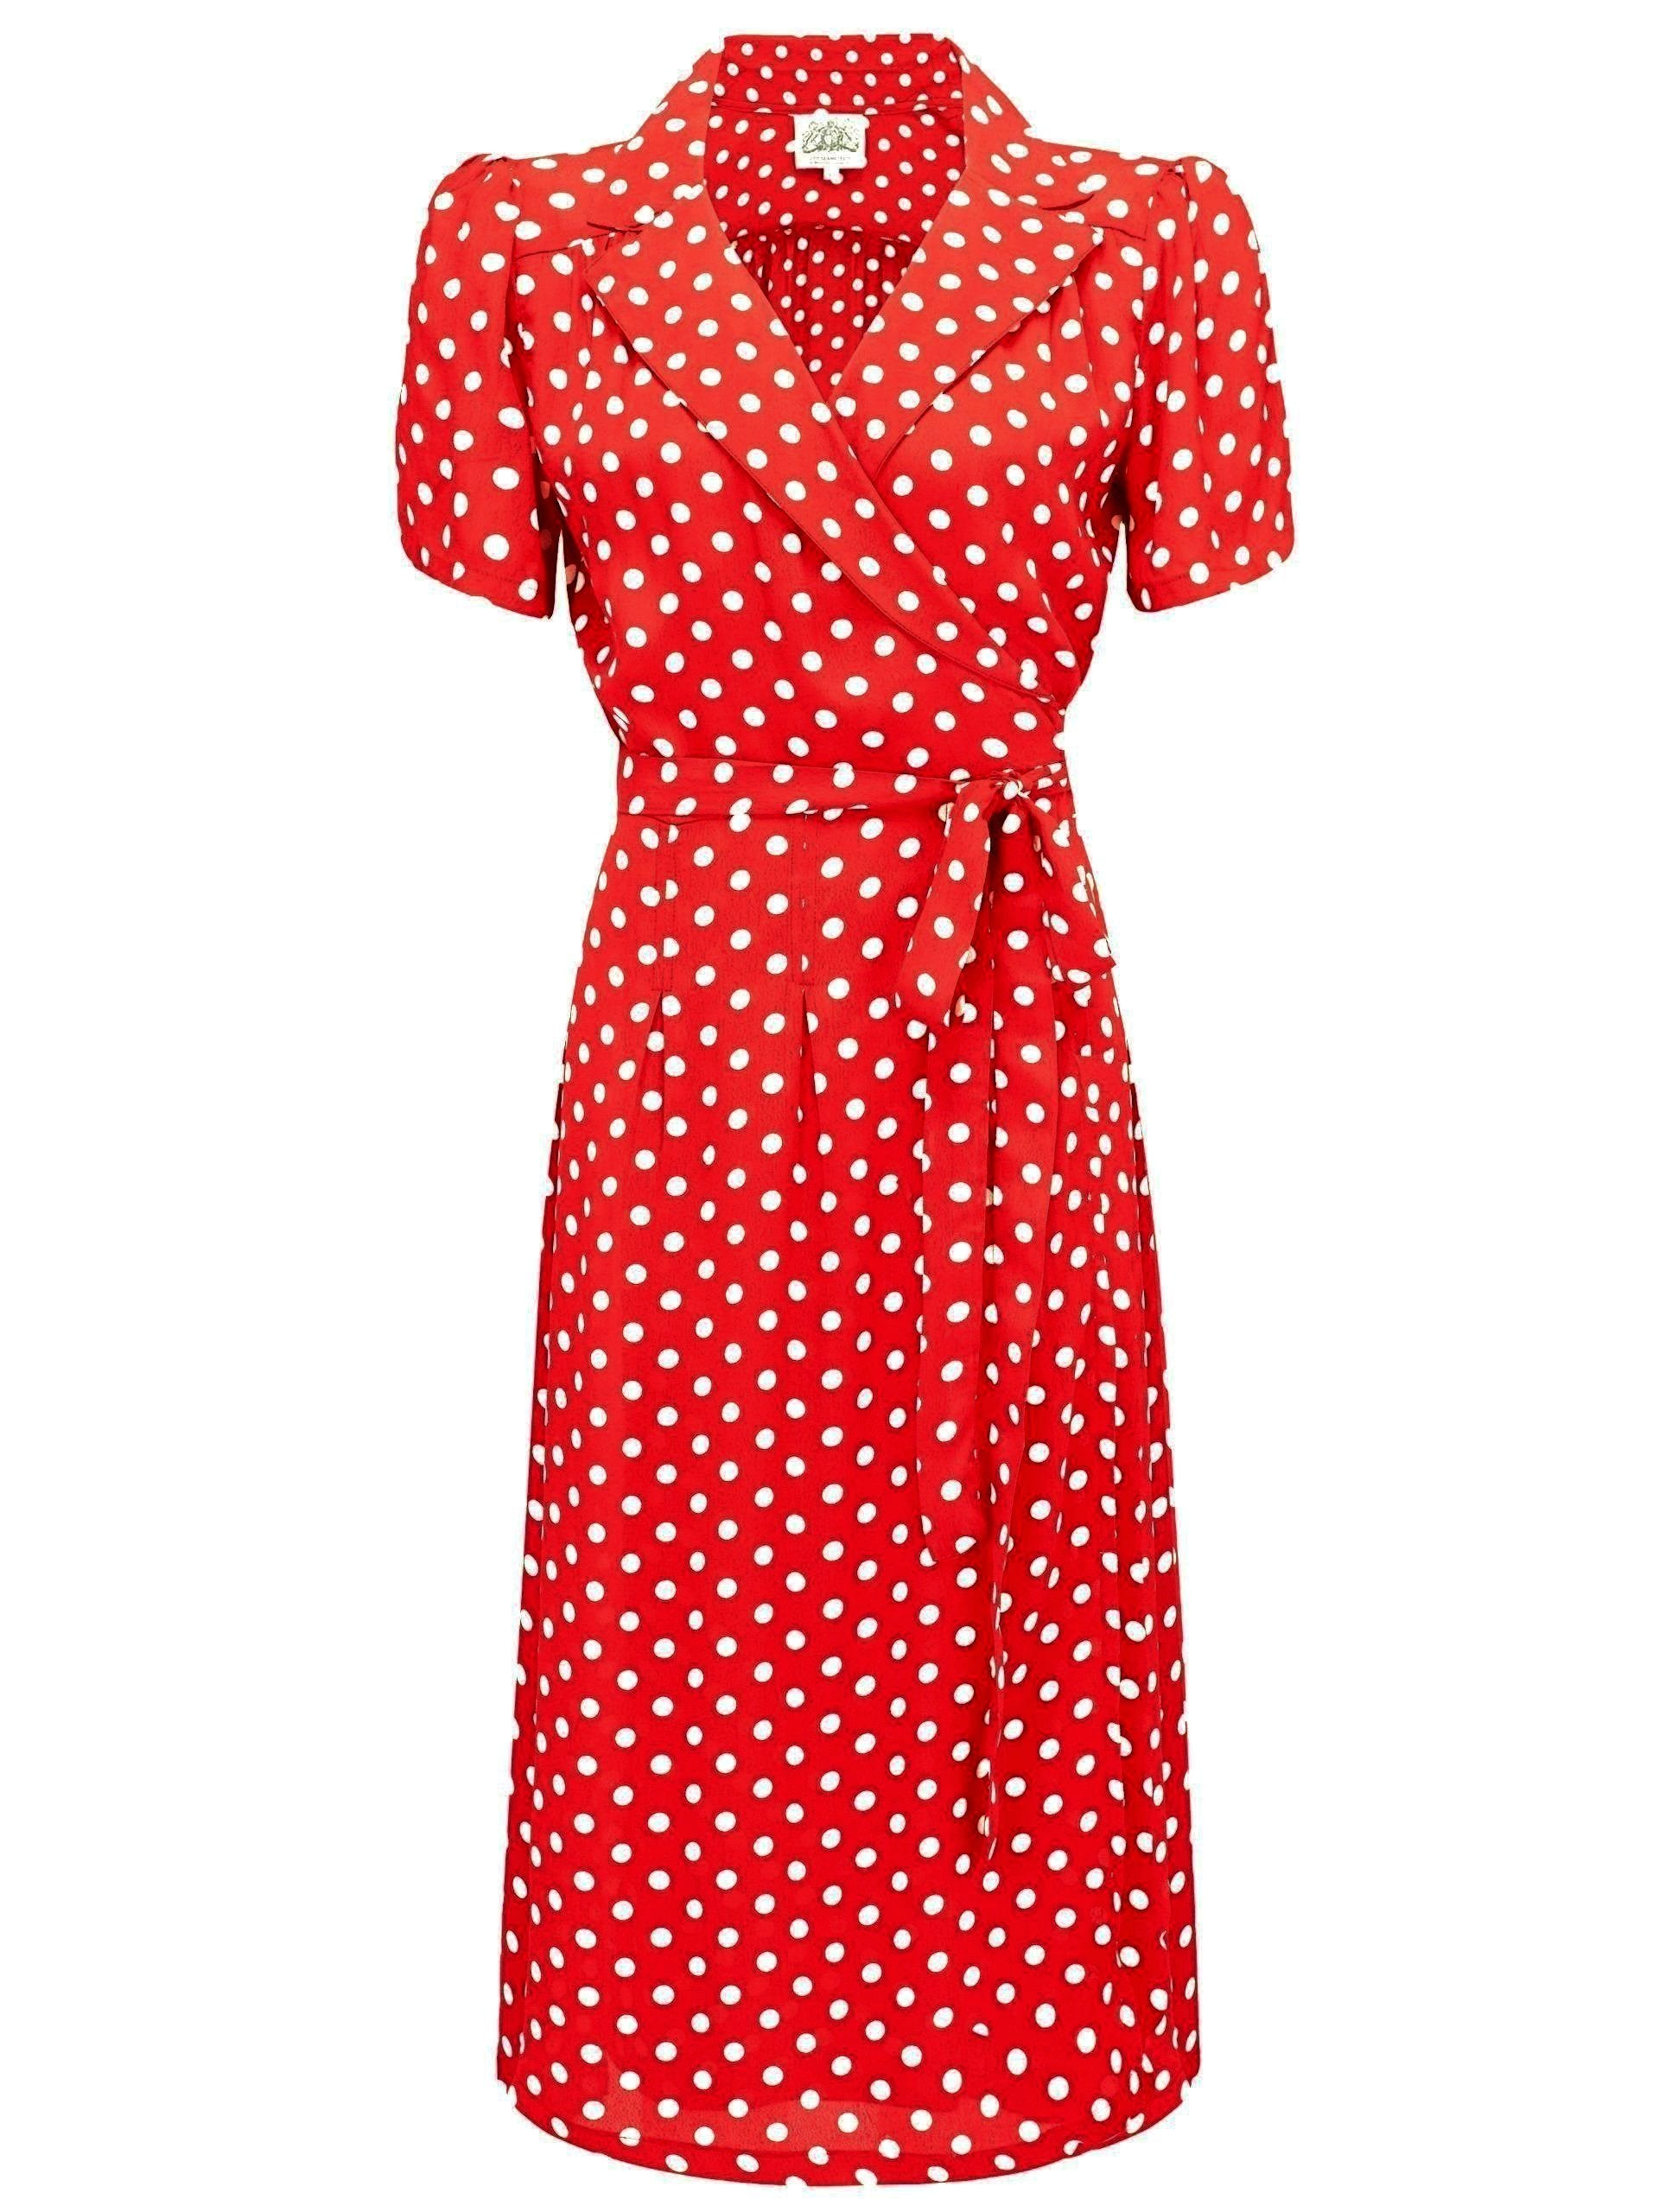 1950s Style Clothing & Fashion Peggy Wrap Dress in Red with Polka Dot Spot Classic Vintage Inspired 1940s Style £79.00 AT vintagedancer.com